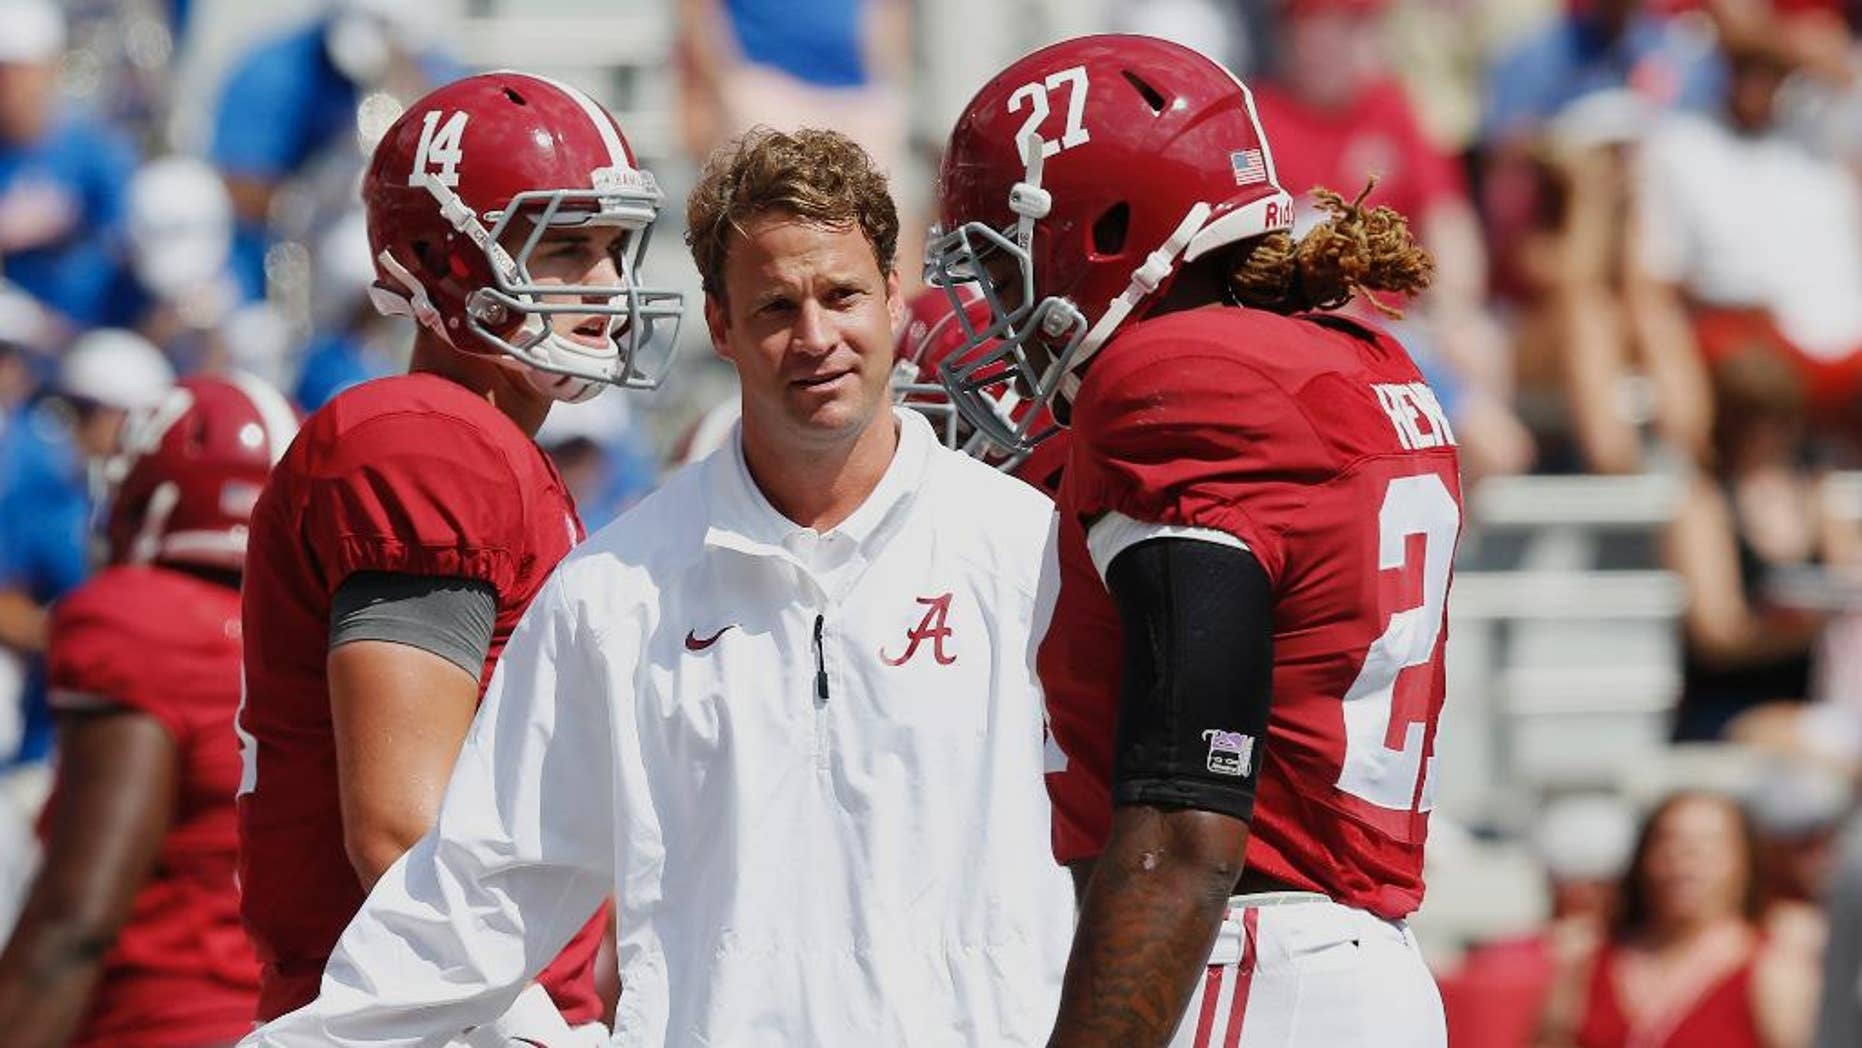 Alabama's offensive coordinator Lane Kiffin, centerr, gestures at running back Derrick Henry (27) before an NCAA college football game against Florida, Saturday, Sept. 20, 2014, in Tuscaloosa, Ala. (AP Photo/Brynn Anderson)